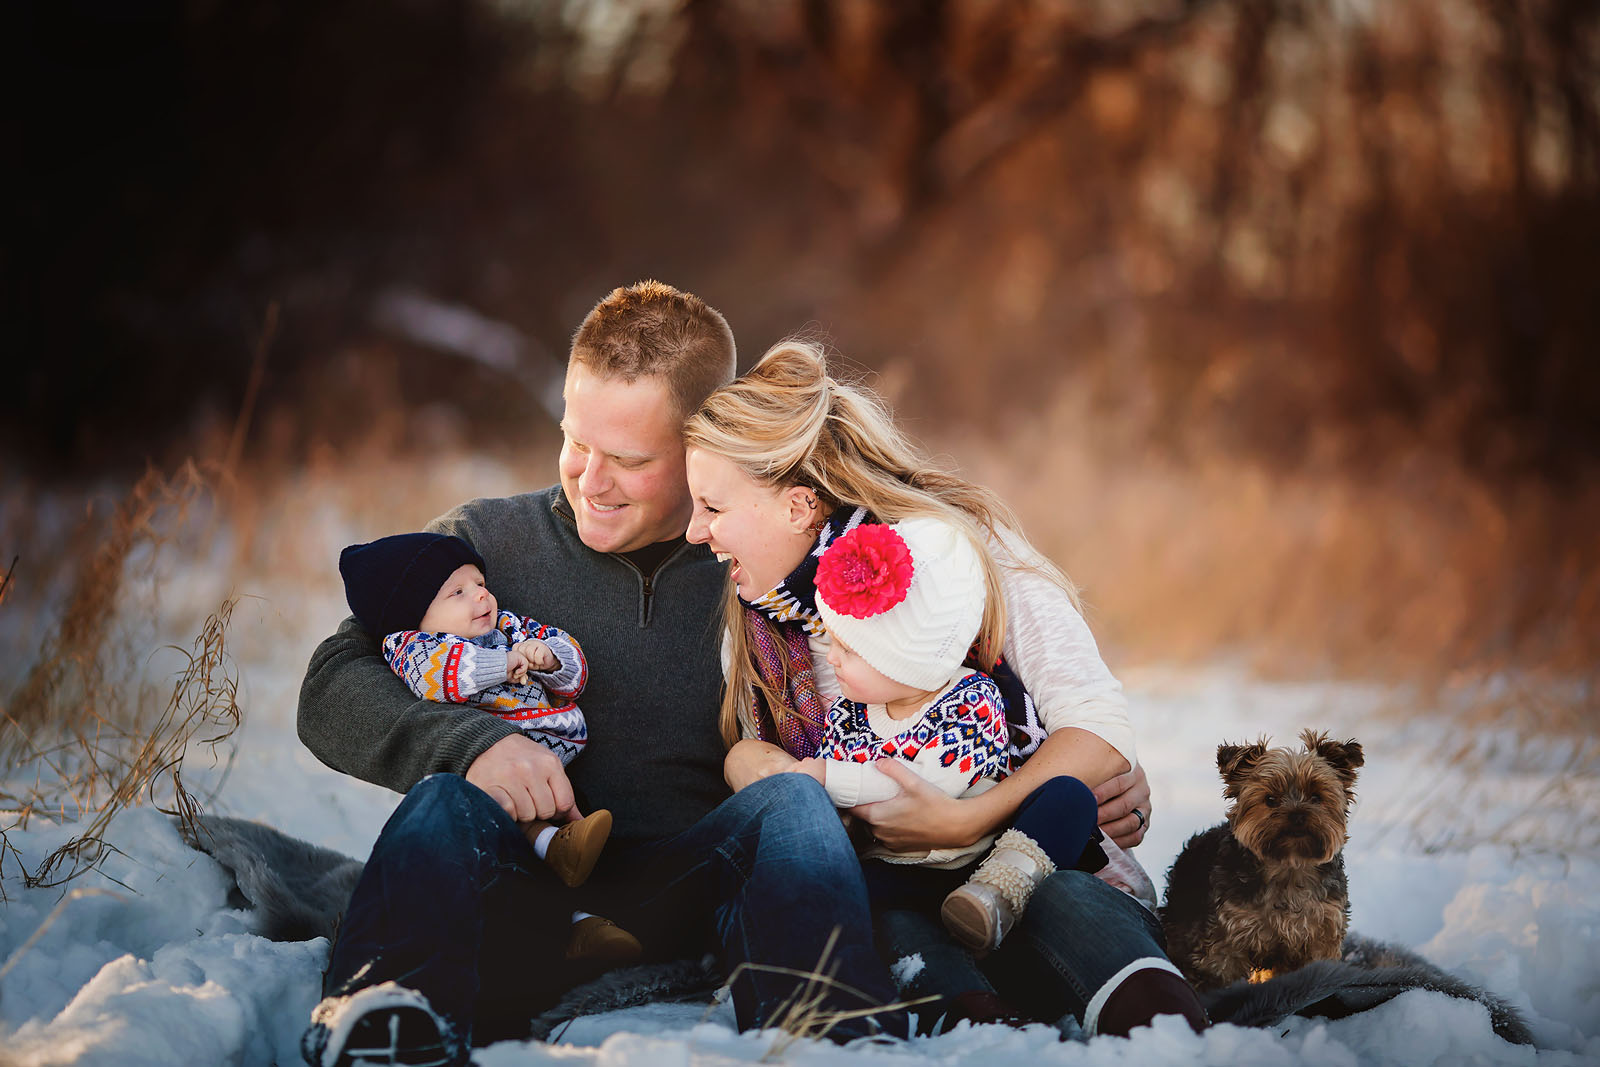 family portrait with dog in the snow by Amber Walder